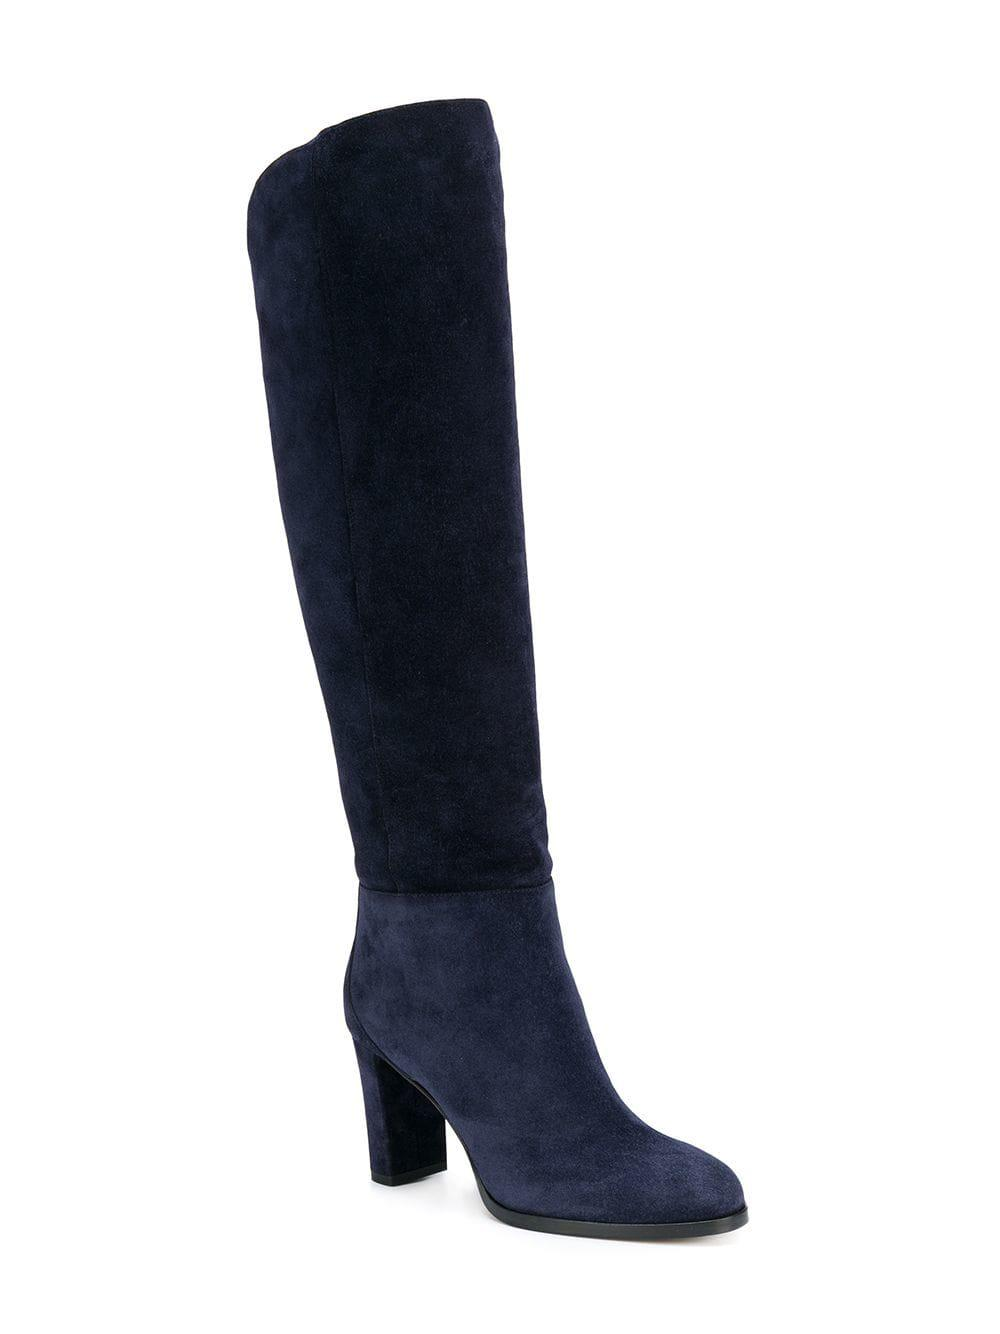 998666730e73 Lyst - Jimmy Choo Madalie 80 Boots in Blue - Save 50%